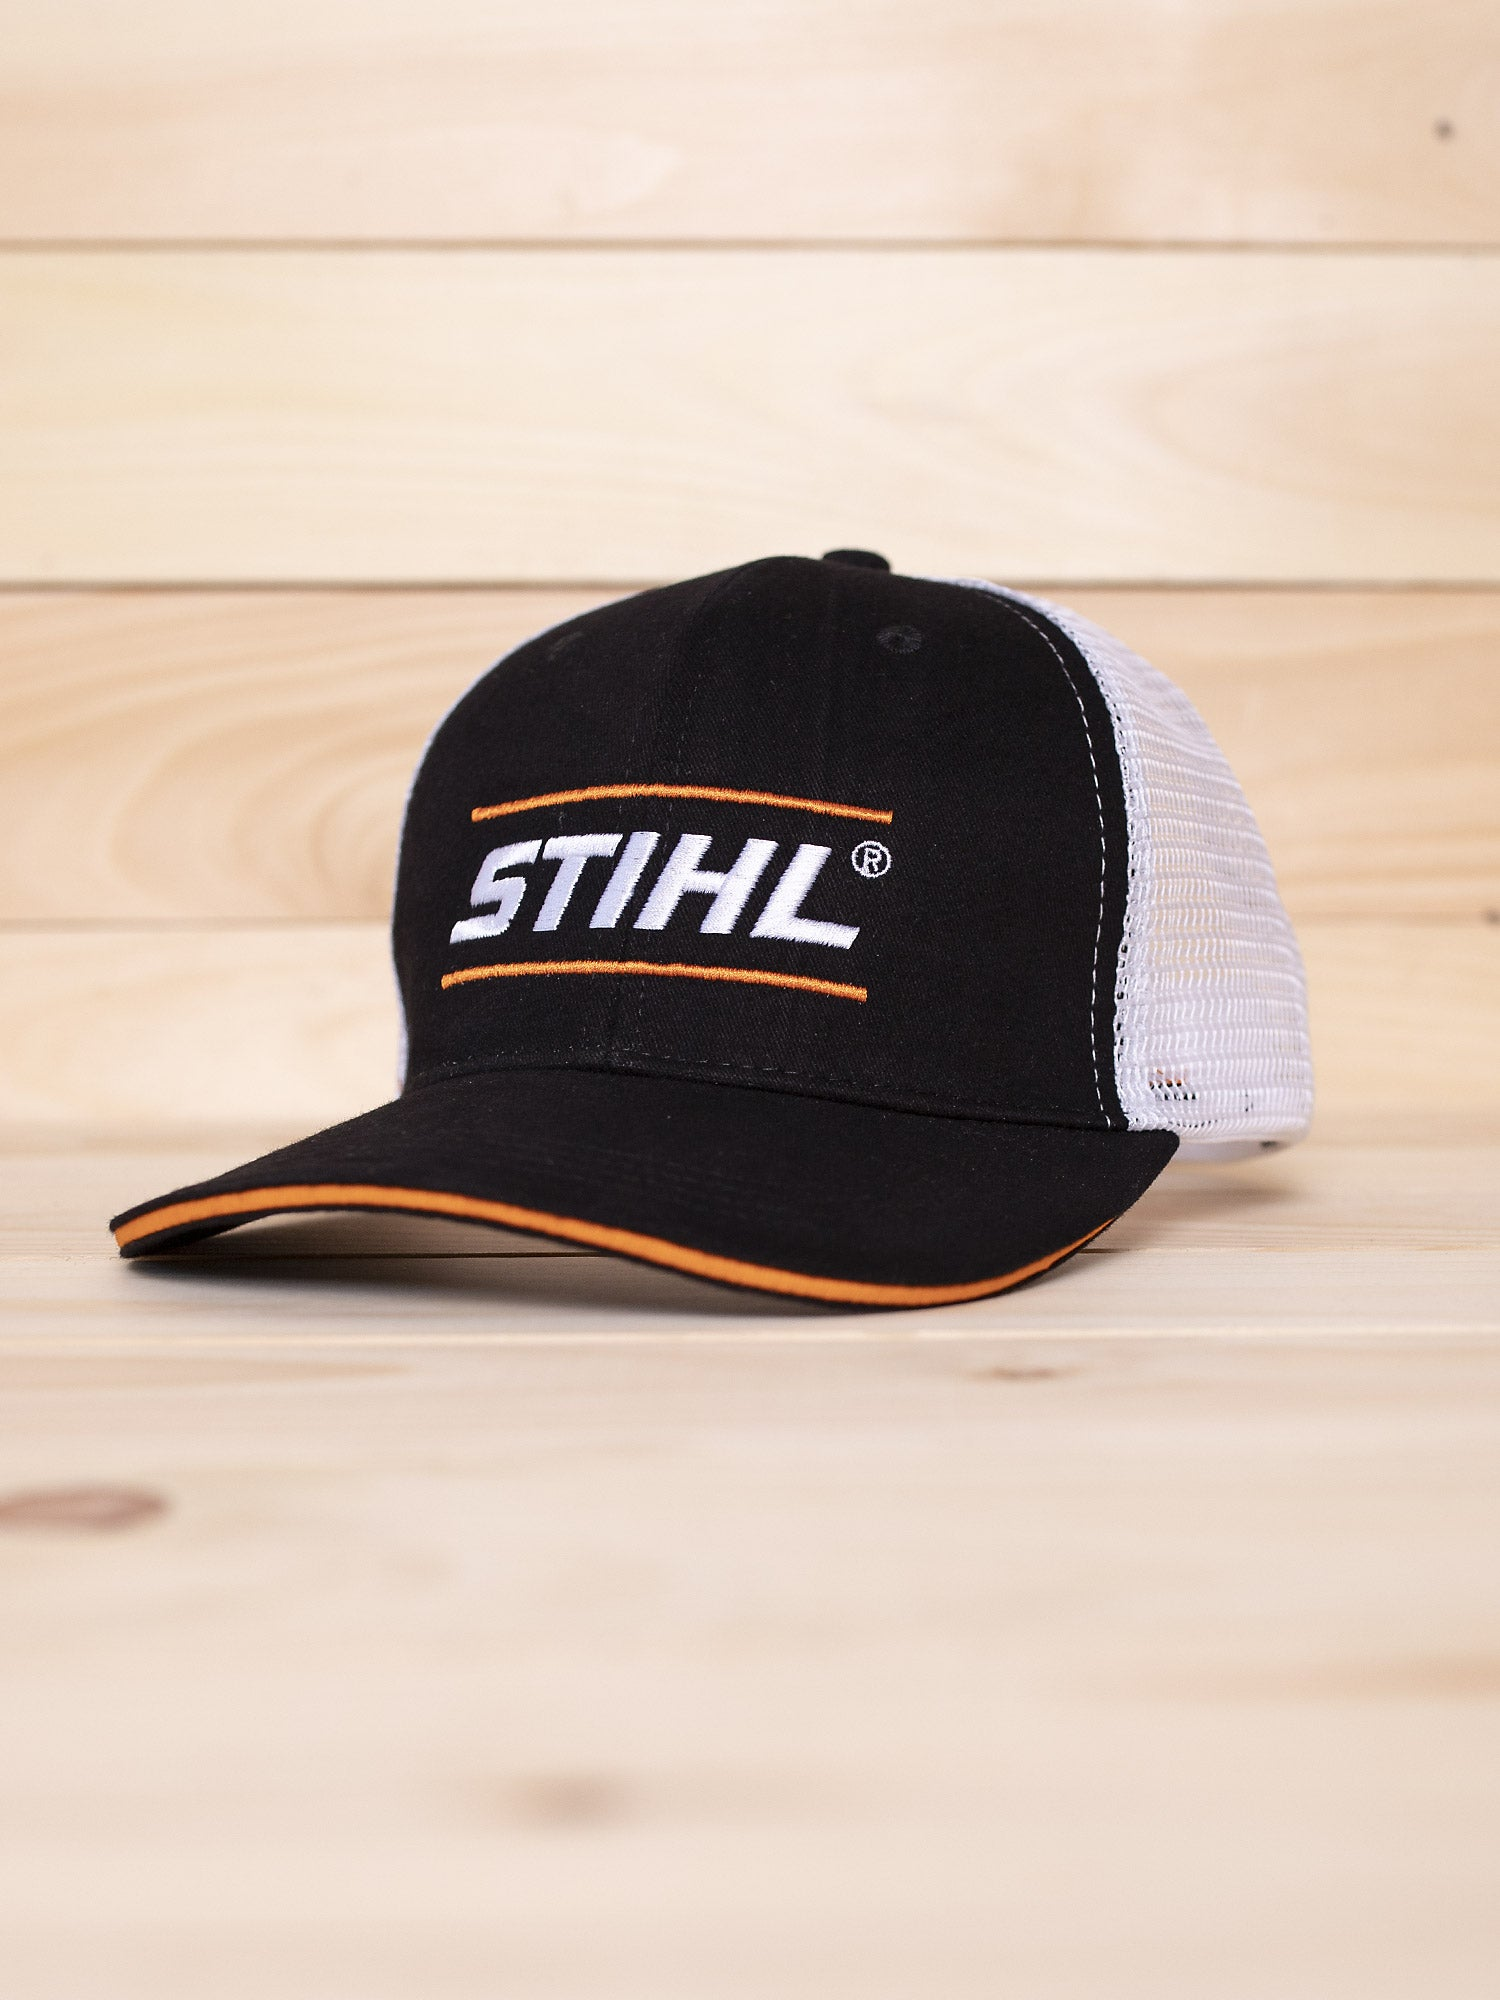 STIHL Black / White Mesh Back Hat